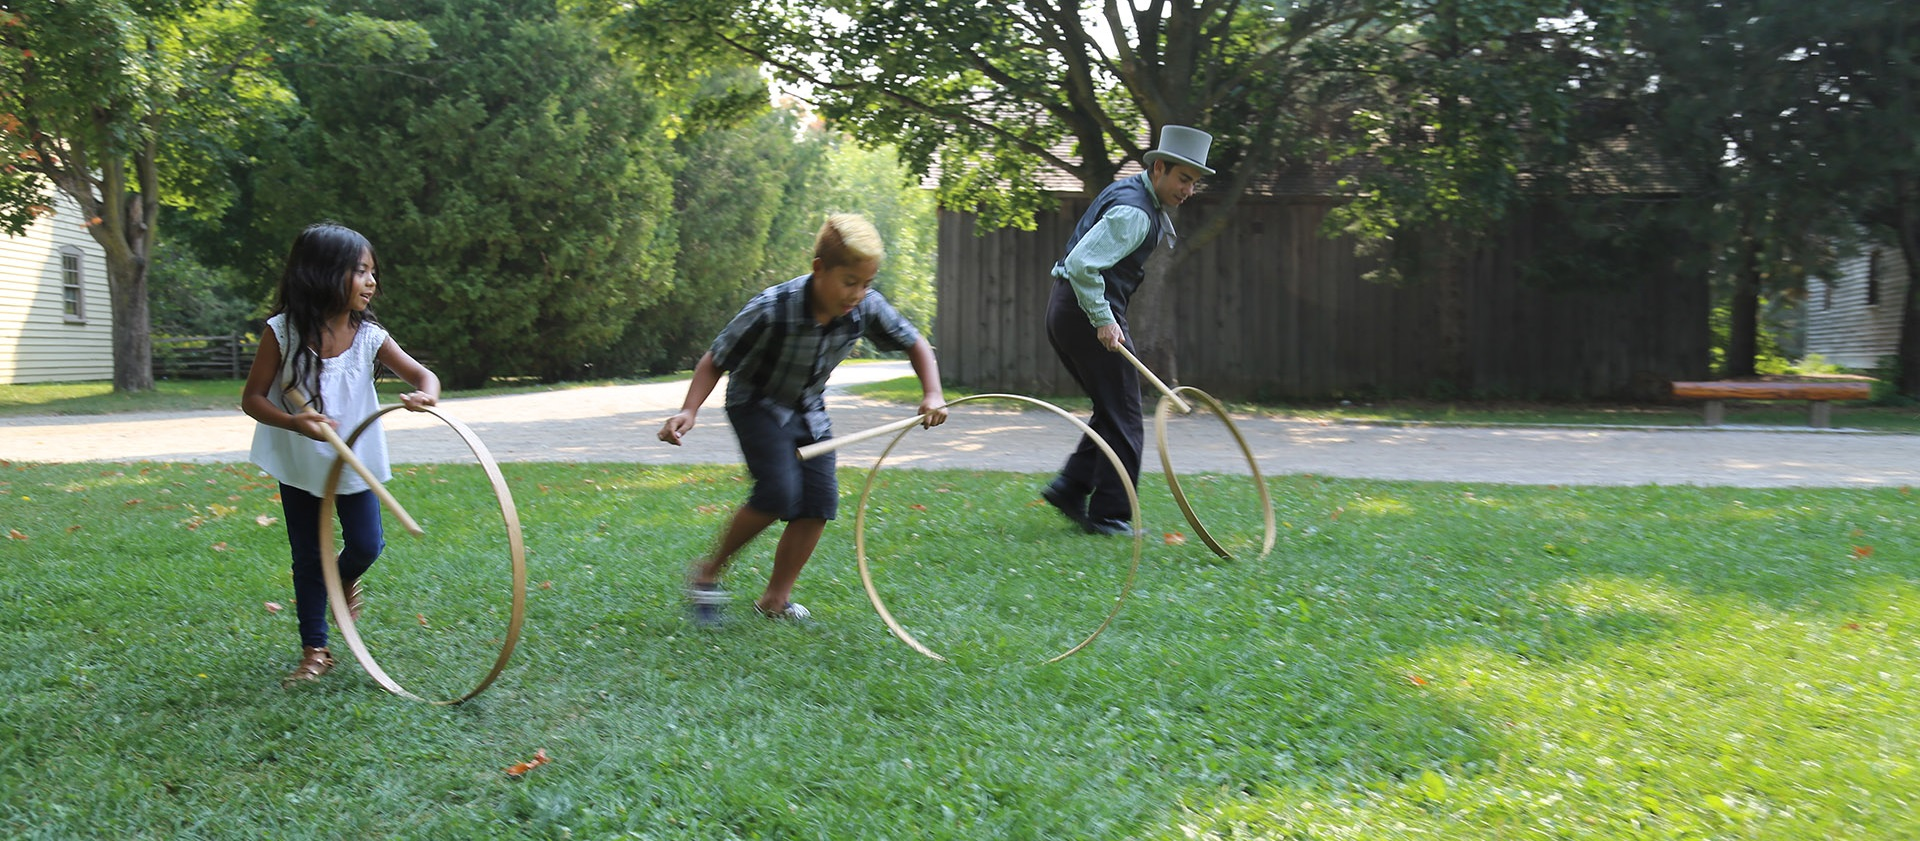 Guide & Scout Day 2019 @ Black Creek Pioneer Village